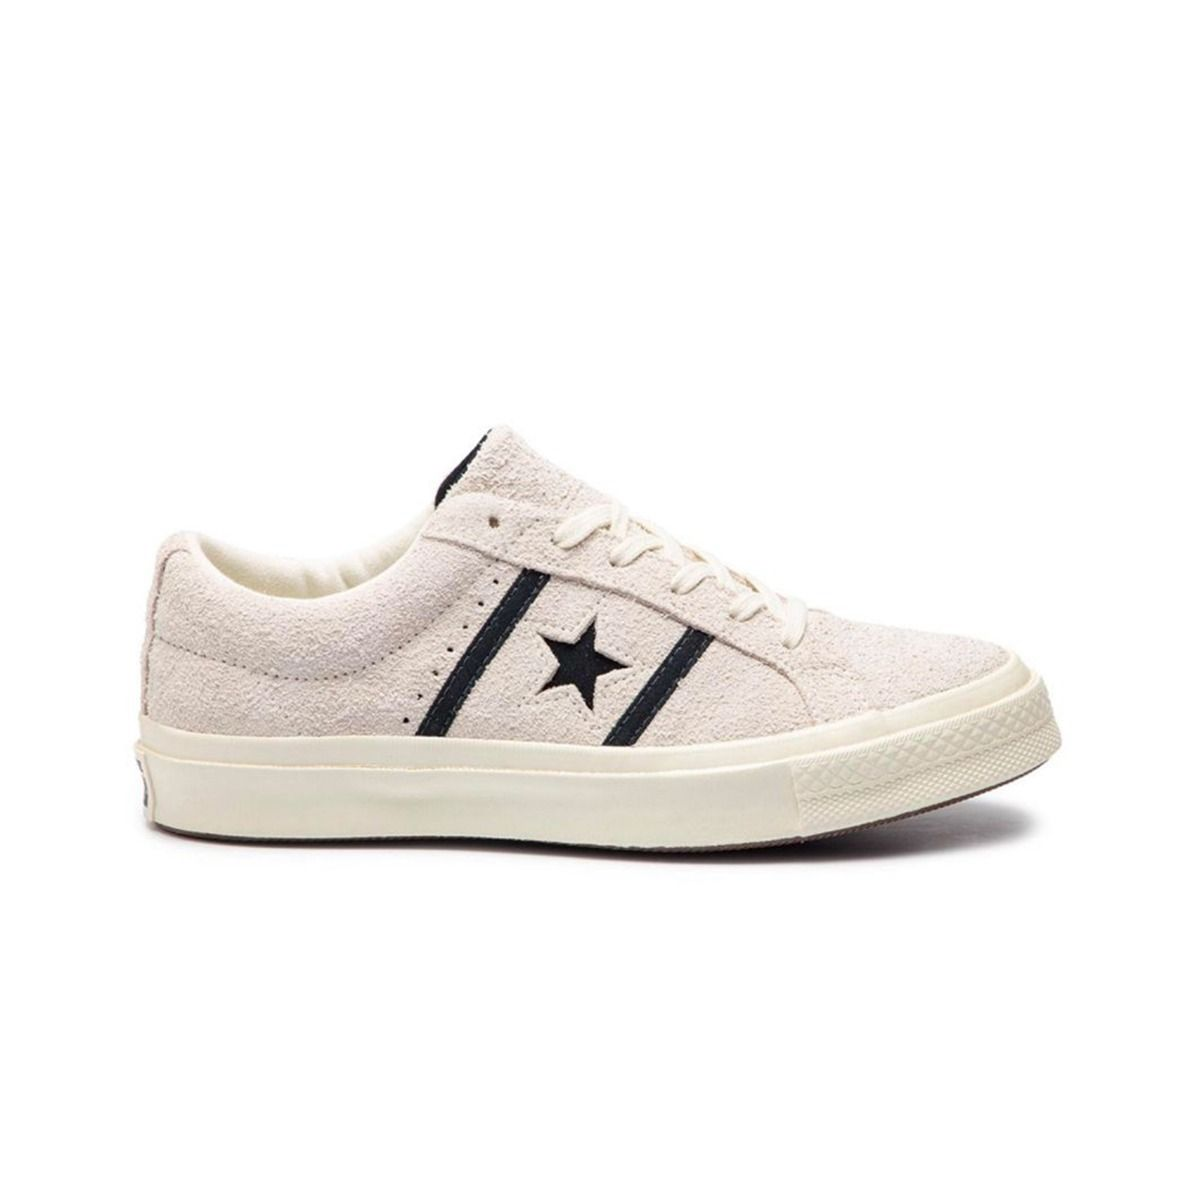 converse one star accademy ox man sneakers 163269C